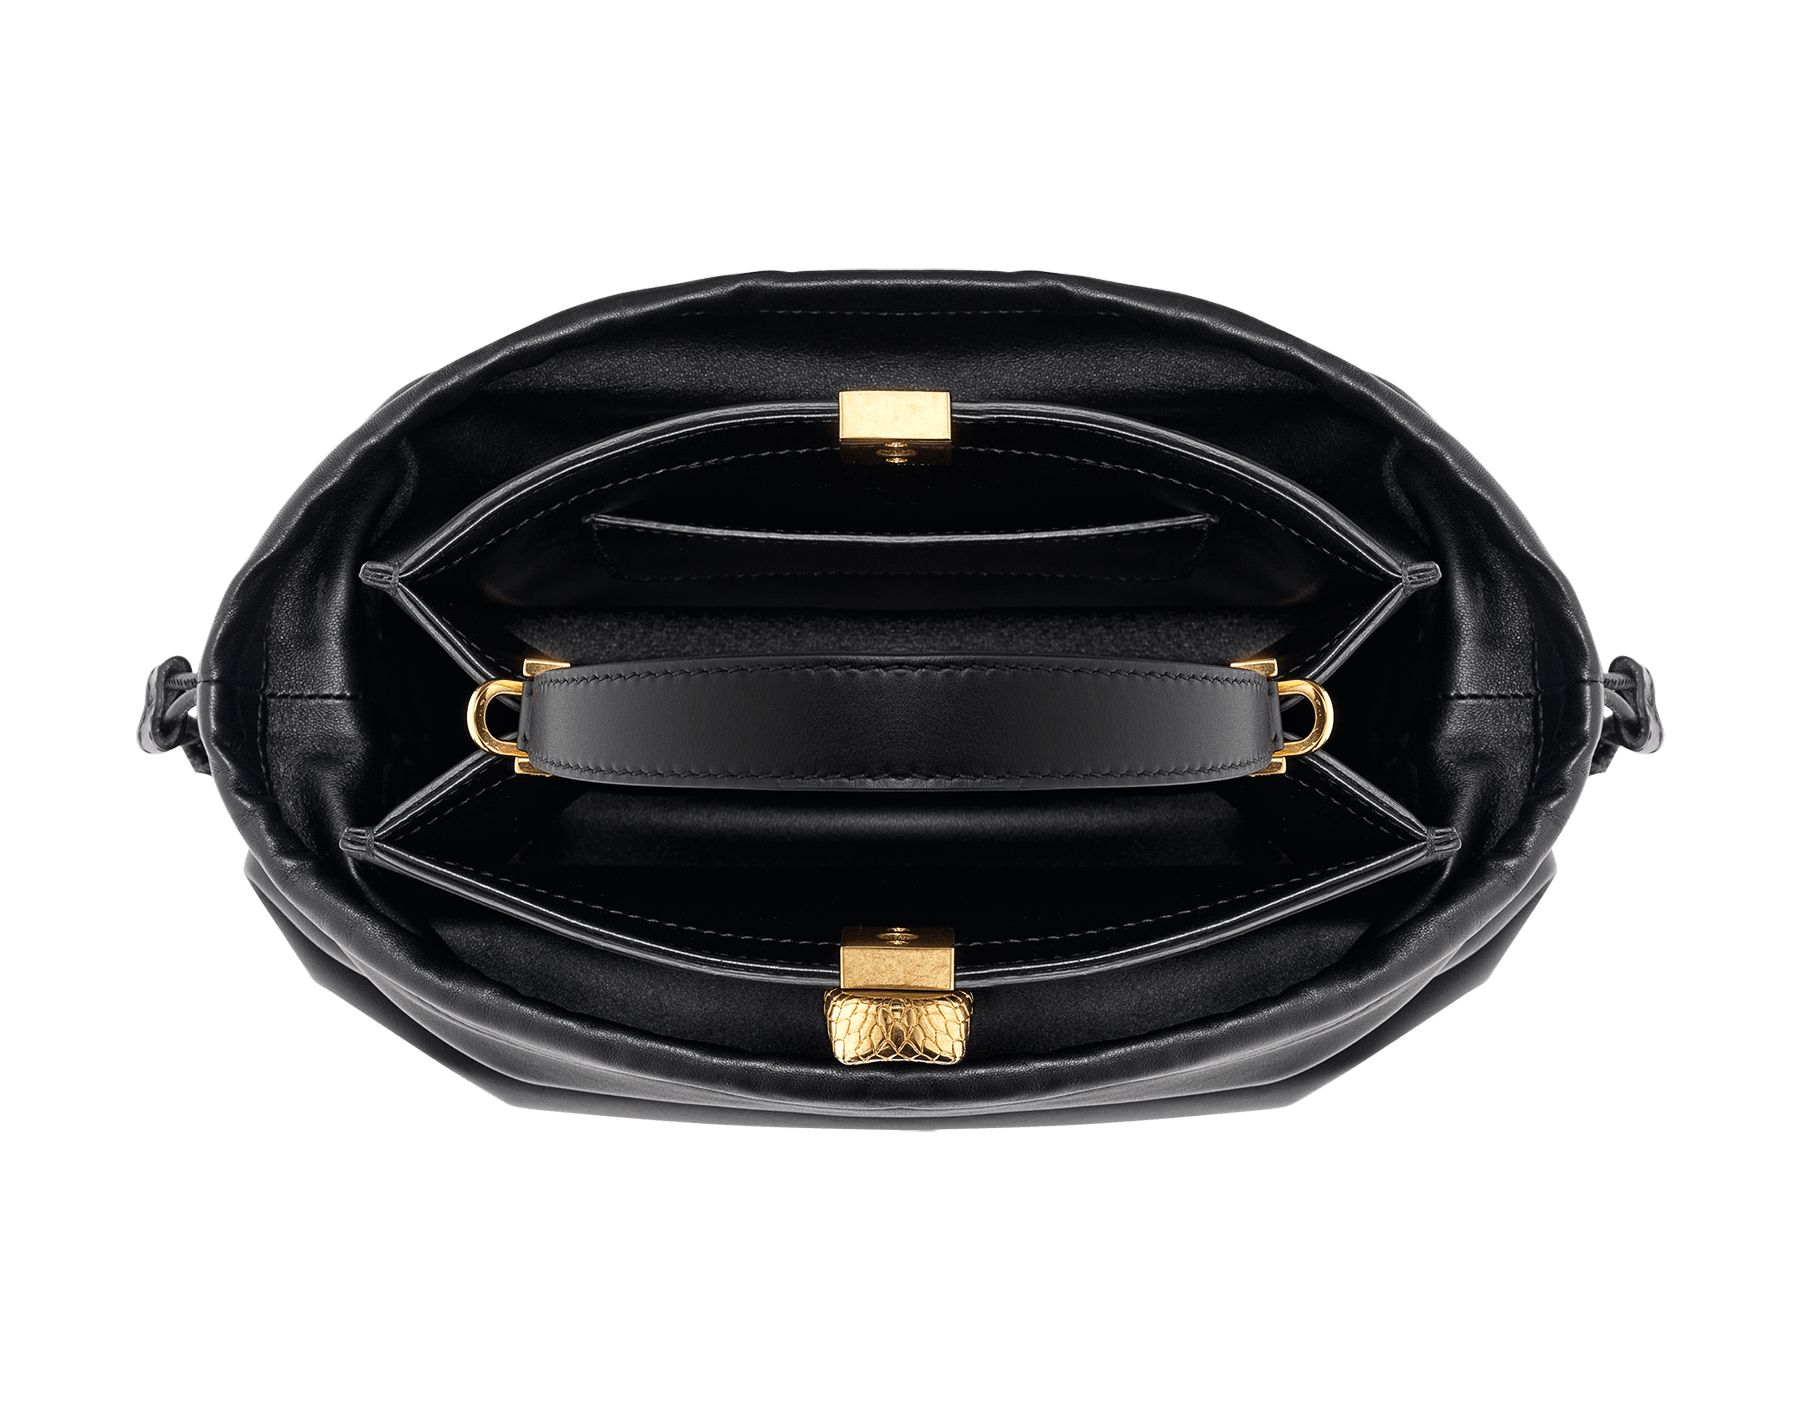 Alexander Wang x Bvlgari 2 in 1 satchel bag in black calf leather with black lambskin drawstring dust bag exterior. New Serpenti head closure in antique gold plated brass with tempting red enamel eyes. Limited edition. 288747 image 4